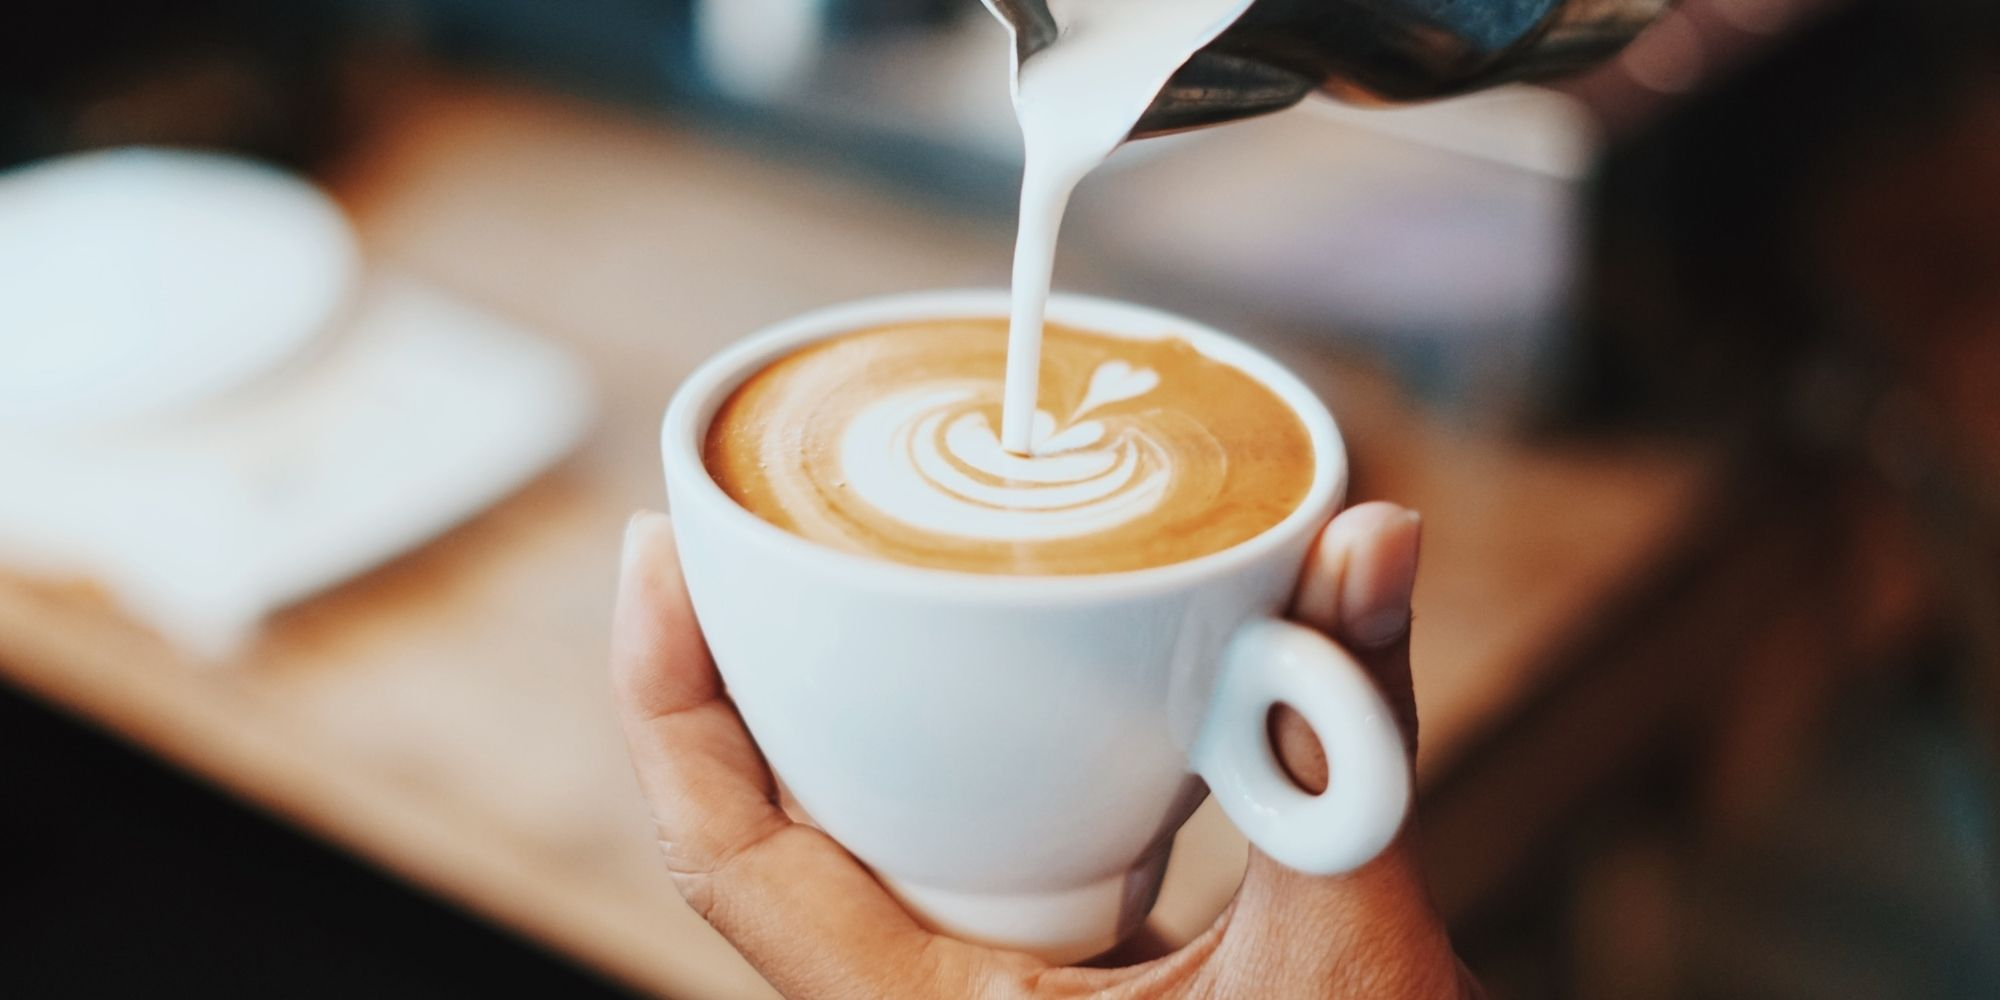 specialty coffee, speciality coffee, coffee, flat white, latte